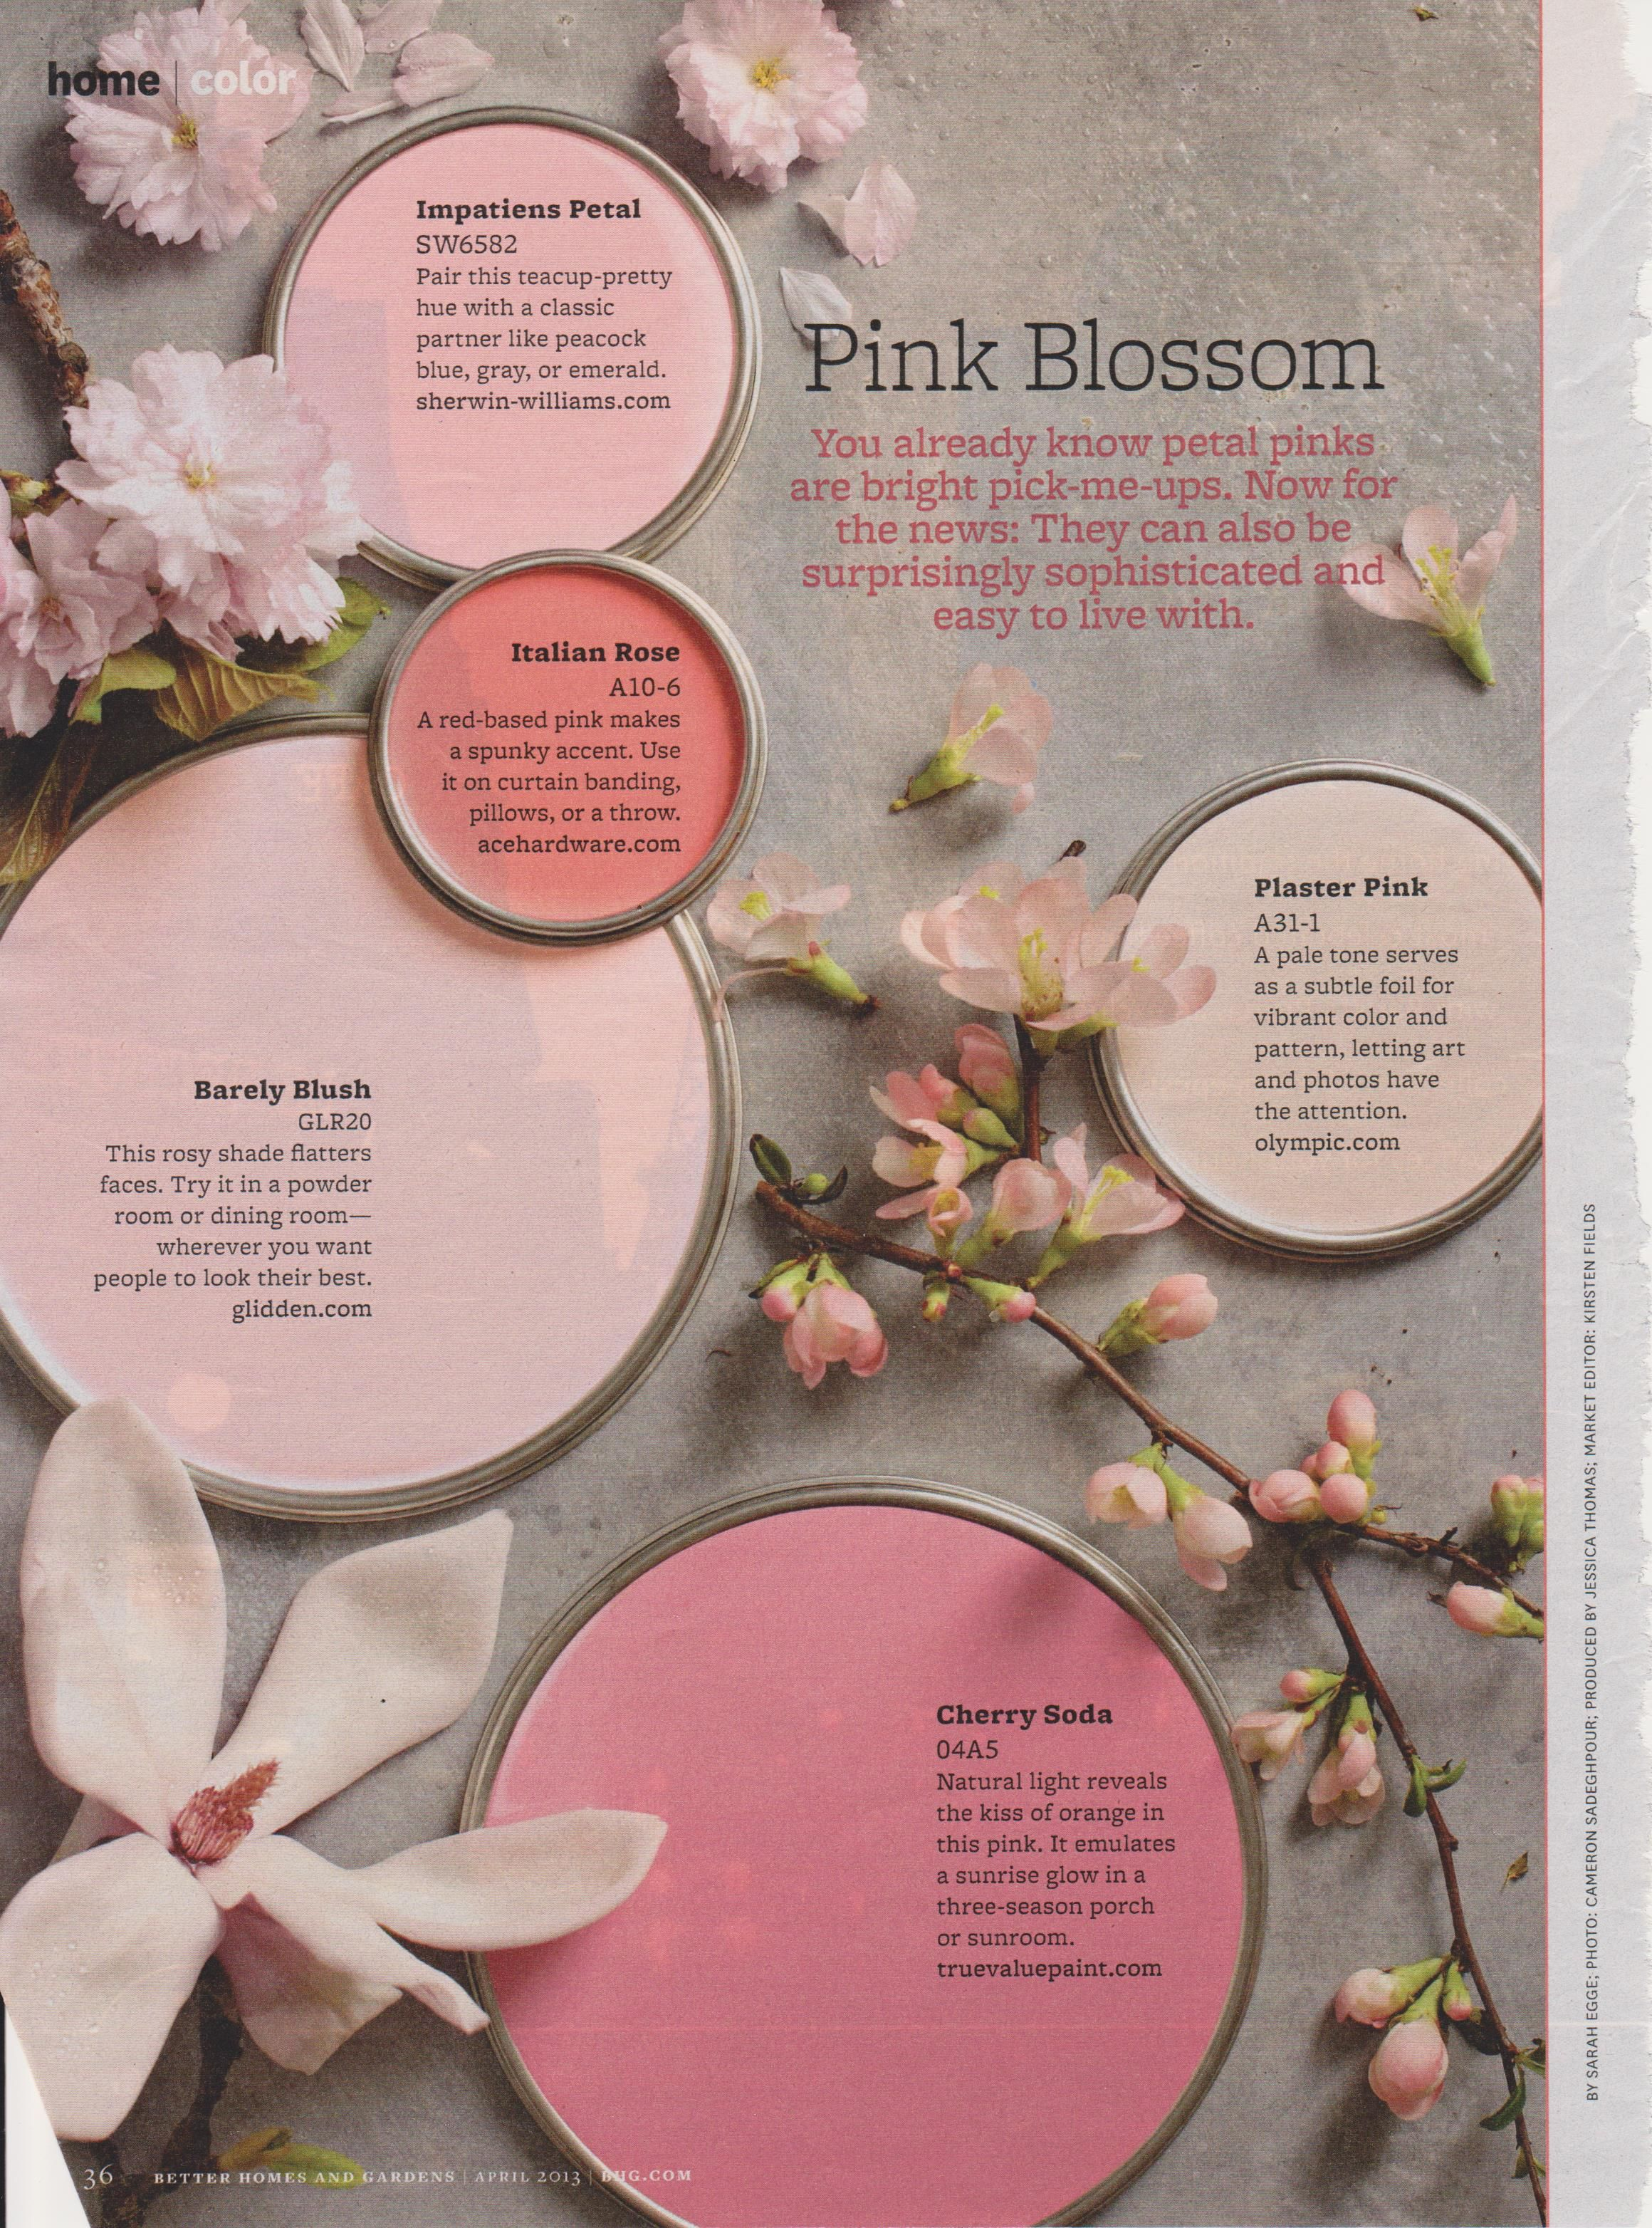 Better homes and Gardens April 2013 | Colors :: Pink & Red ...